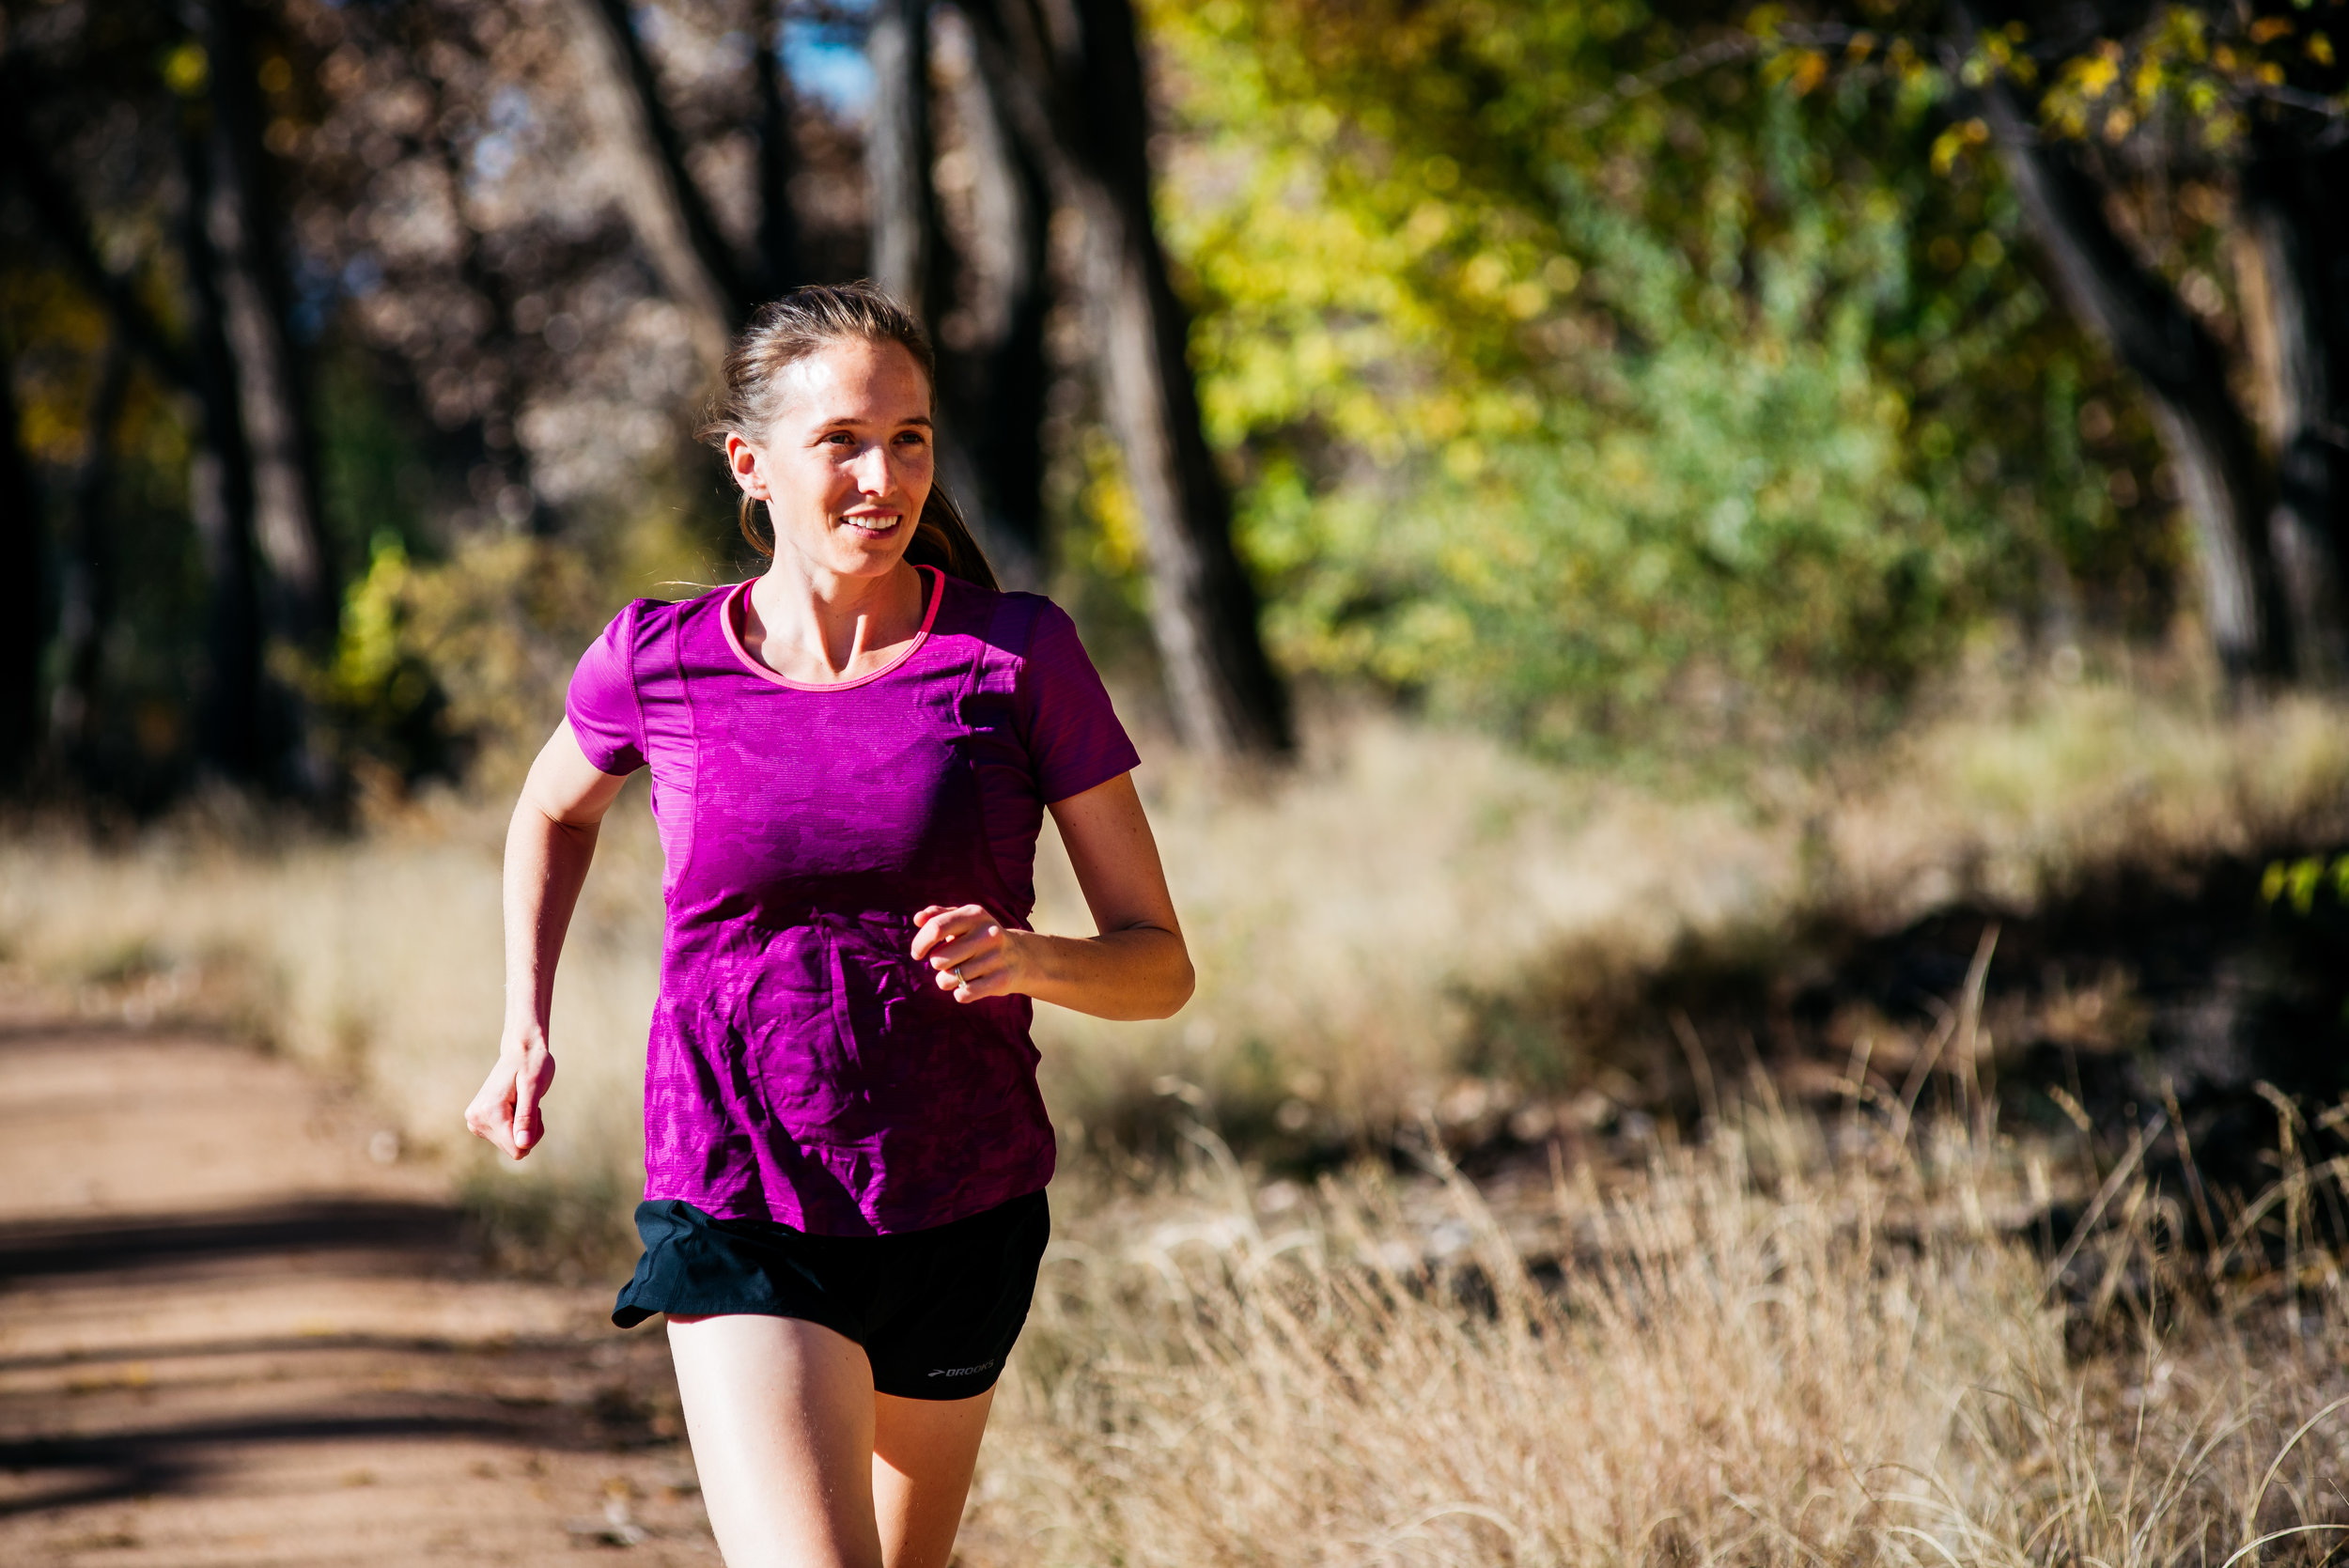 langford sports injury physical therapy albuquerque